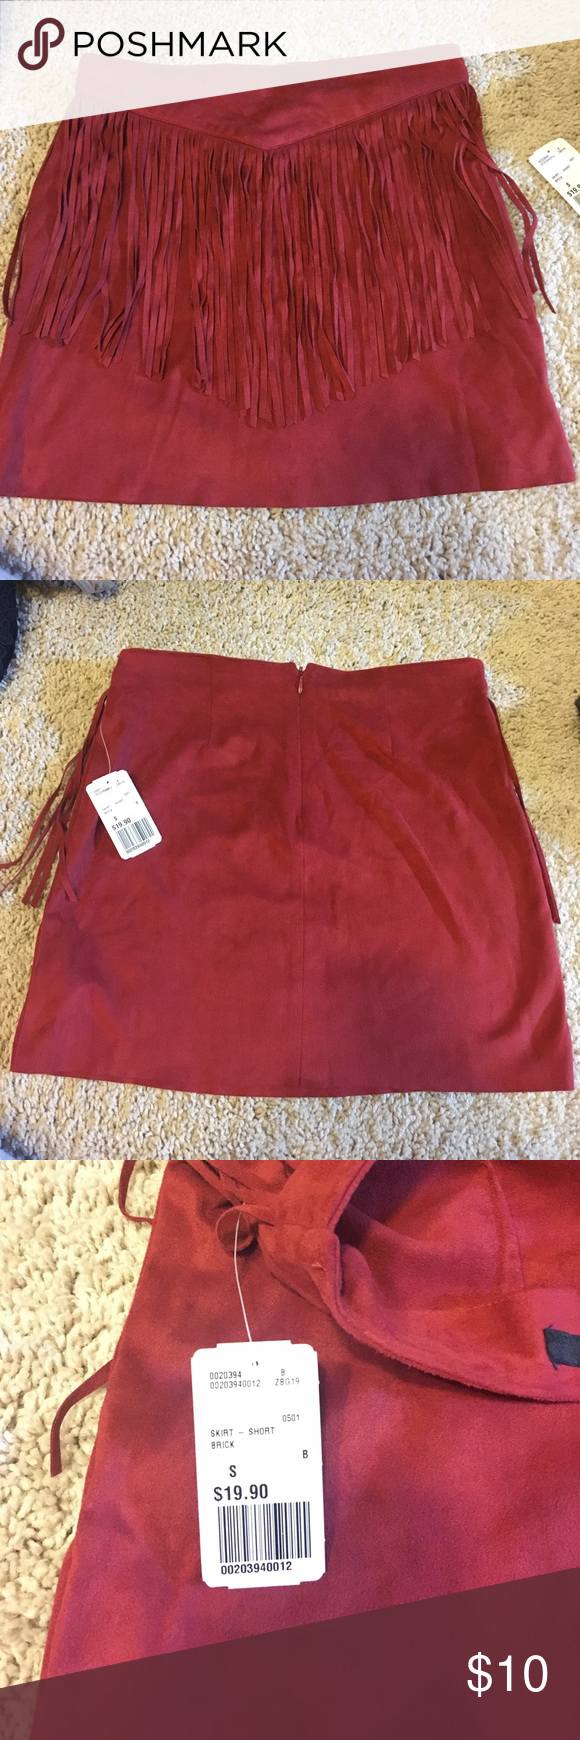 Suede fringe red skirt Never worn super cute suede fridge skirt! Tag still attached Forever 21 Skirts Mini